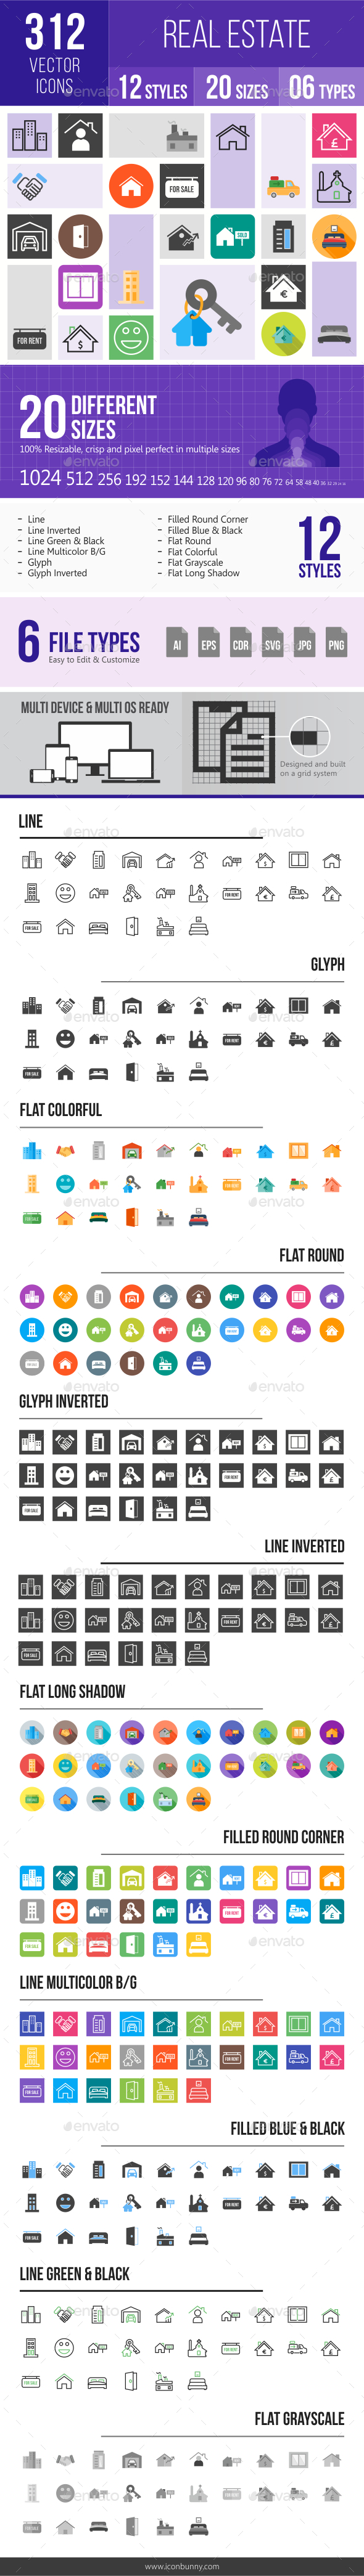 312 Real Estate Icons - Icons